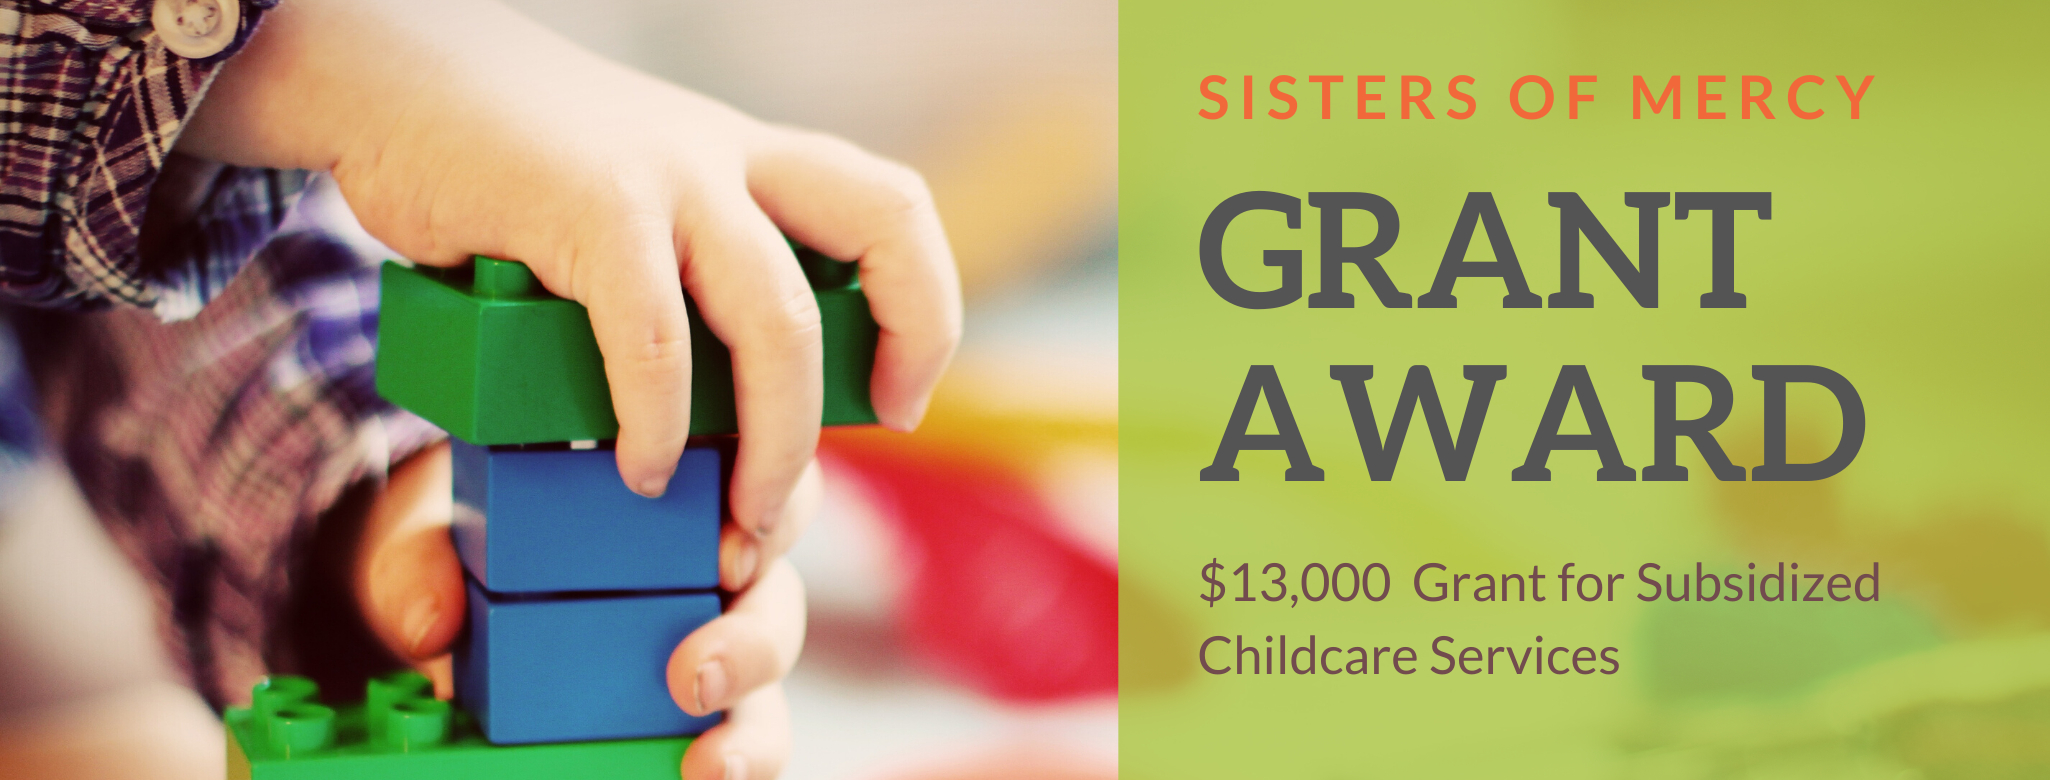 FOR IMMEDIATE RELEASE For more information, contact: Jessica Gaul Executive Director 541-957-1008 Jessicag@cobbschool.org   COBB CHILDREN'S LEARNING CENTER RECEIVES $13,000 GRANT TO SUBSIDIZE CARE FOR DOUGLAS COUNTY FAMILIES Roseburg, Oregon (07.21.20) — Cobb Children's Learning Center has received a $13,000 grant from the Sisters of Mercy to support its subsidized care program at Cobb Childcare […]